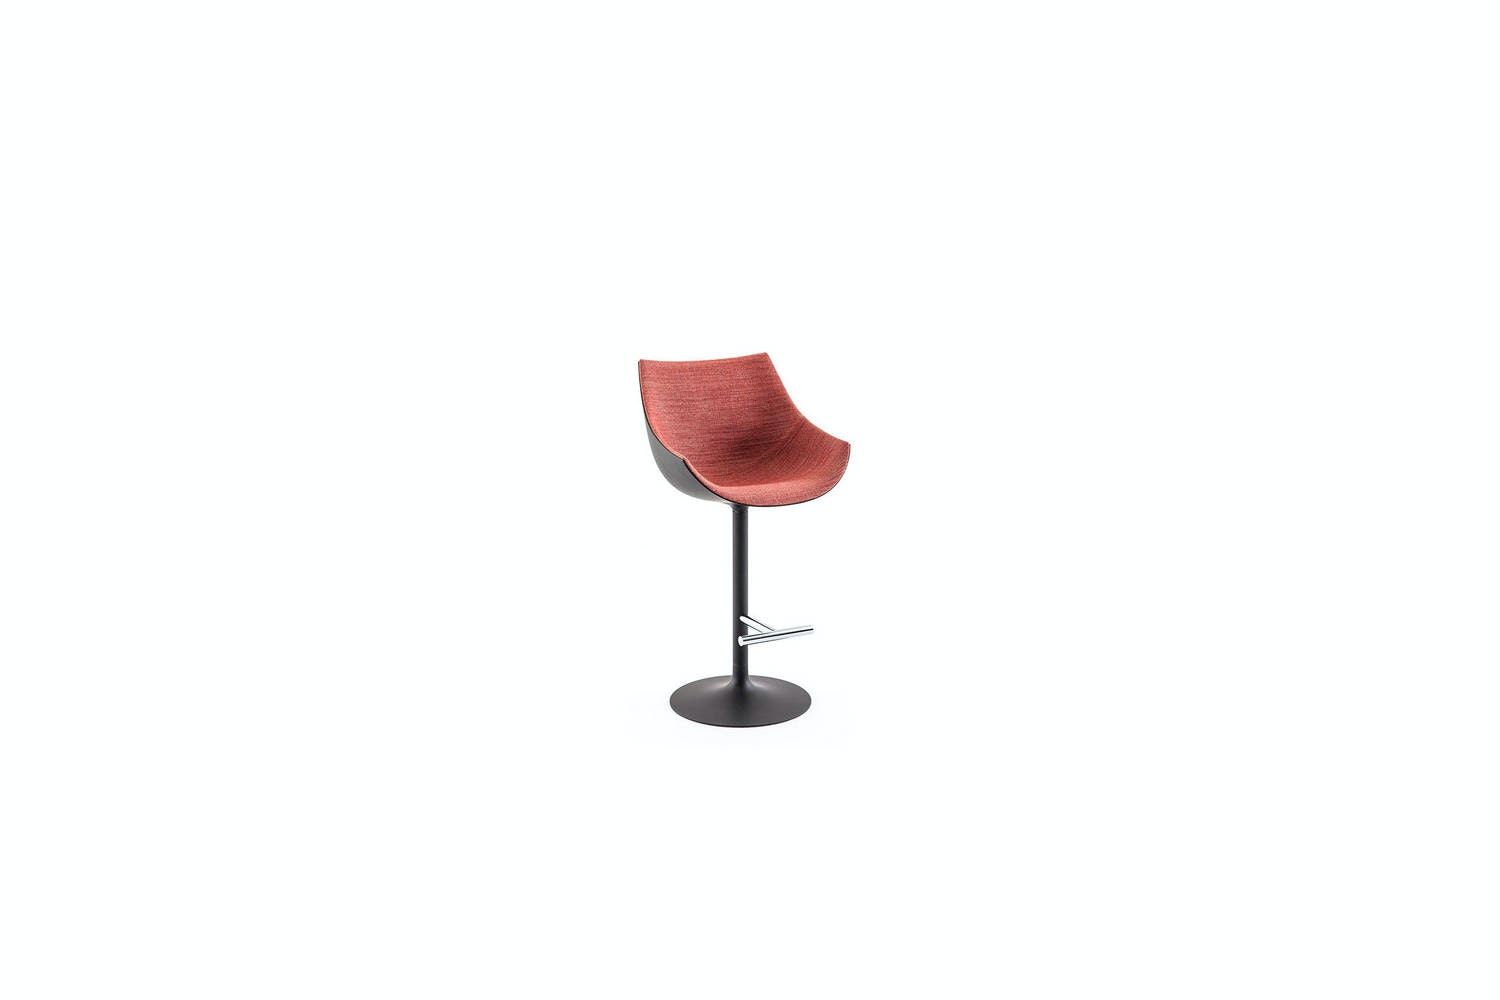 246/248 Passion Stool by Philippe Starck for Cassina